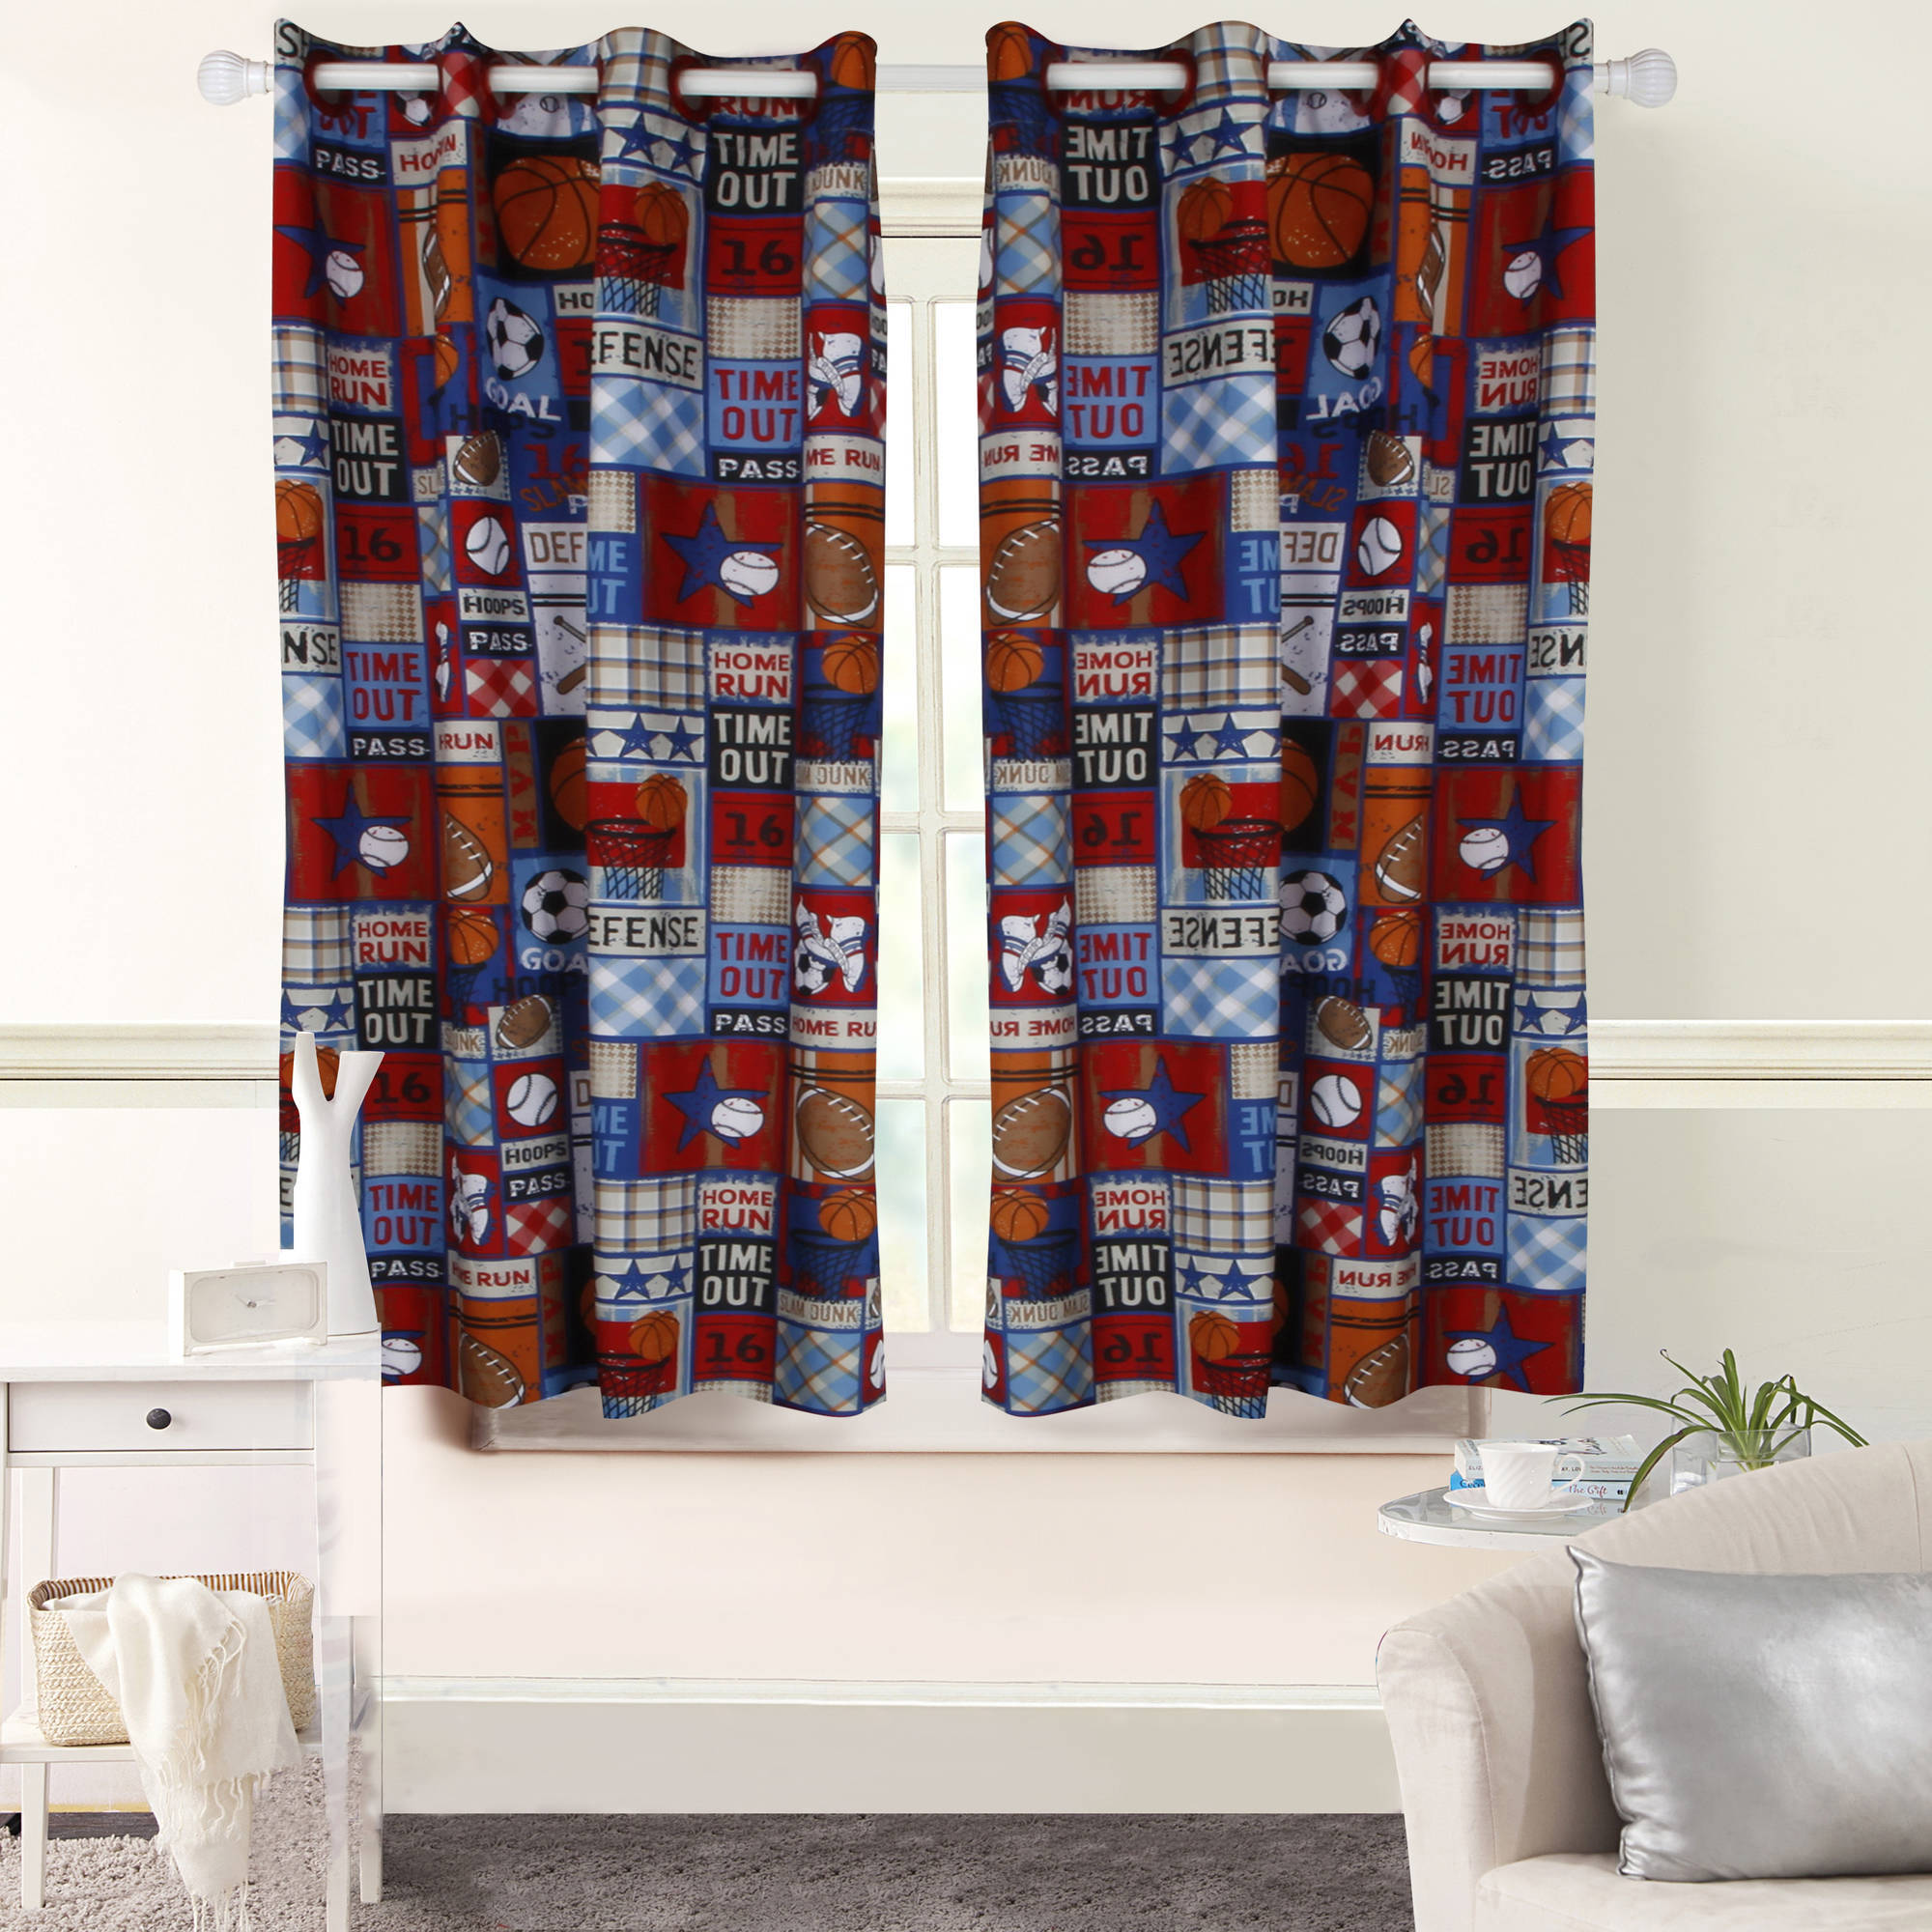 Mainstays Grommet Foamback Sports Patch Boy's Bedroom Curtain Panel by Keeco LLC